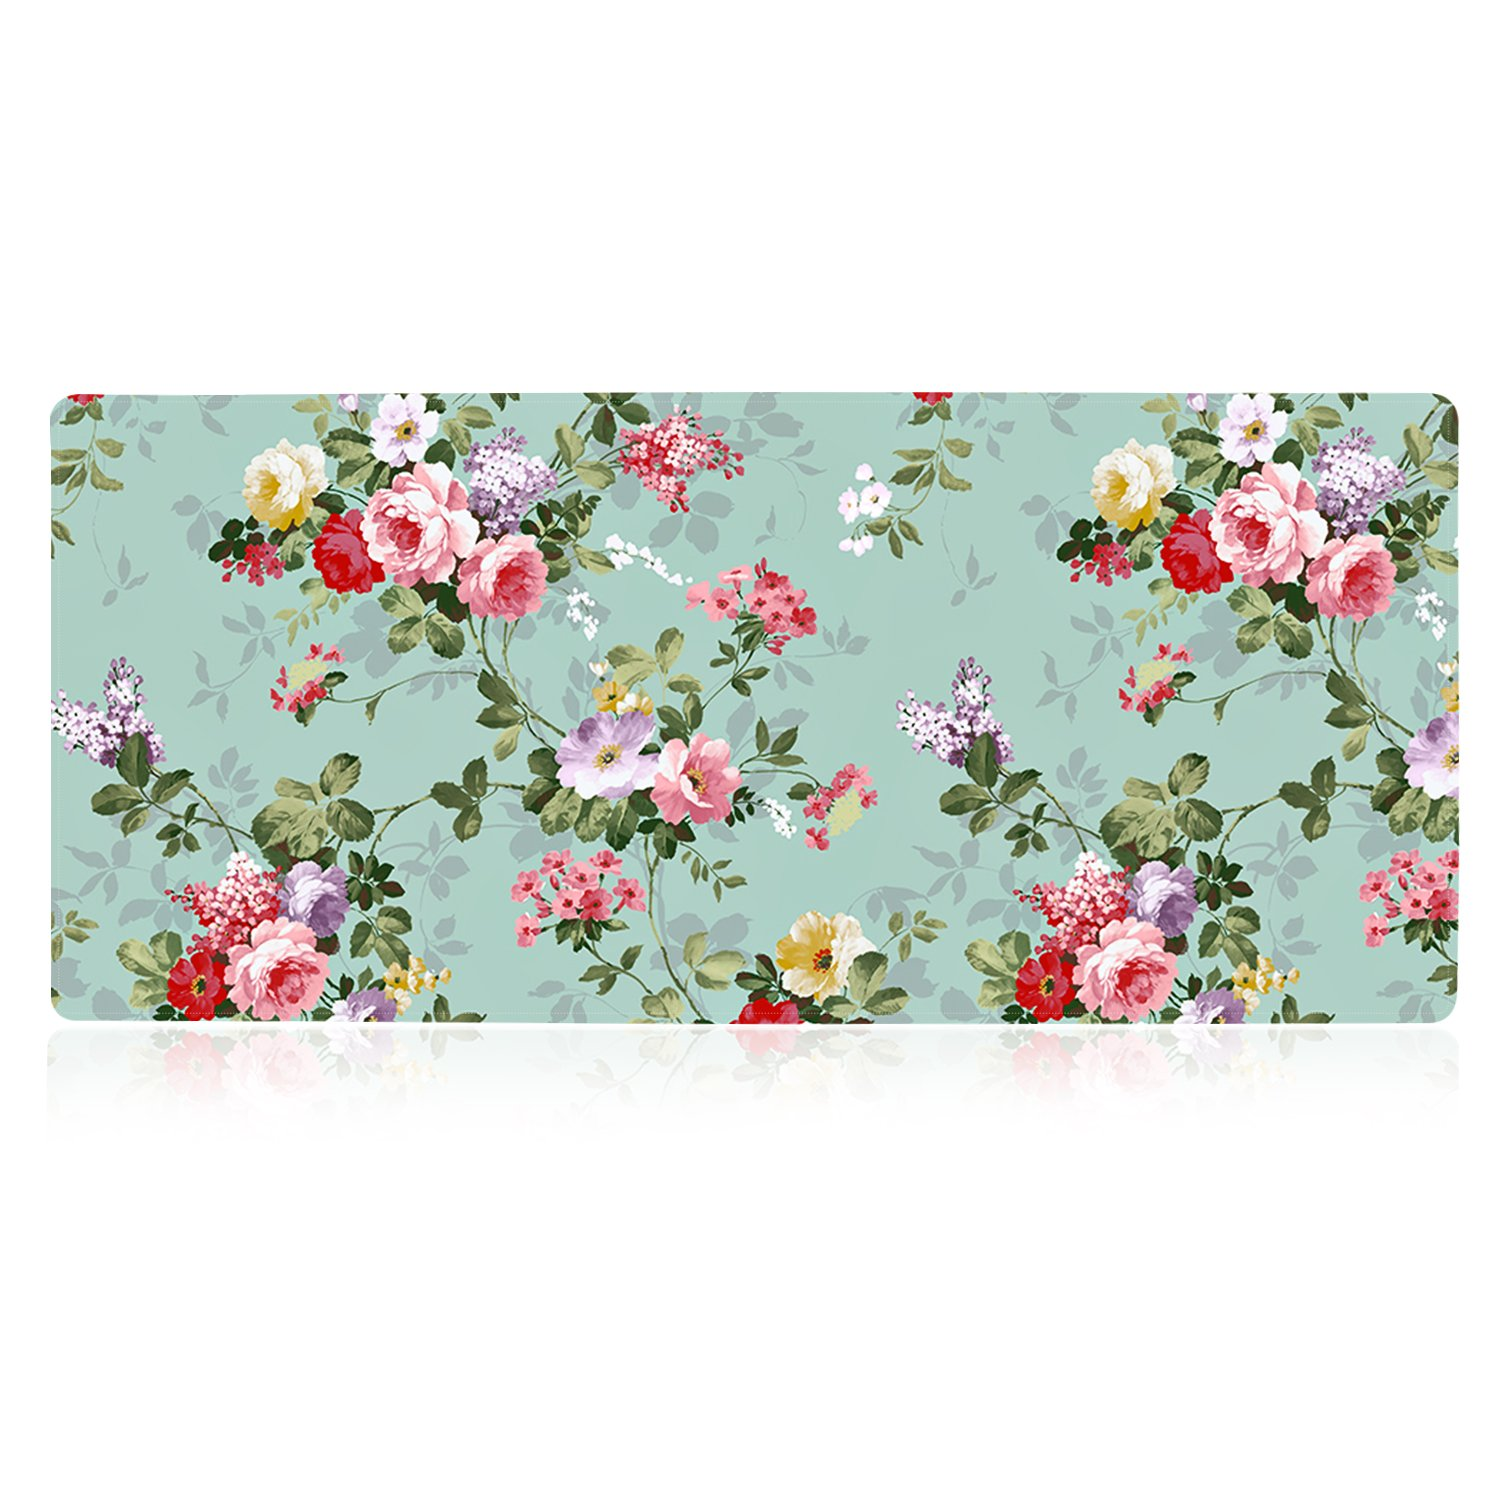 iLeadon Extended Gaming Mouse Pad - Non-Slip Water-Resistant Rubber Base Computer Keyboard Mouse Mat, 35.1 x 15.75-inch 2.5mm Thick XX-Large, Ideal Partner for Work & Game, Green Pink Rose